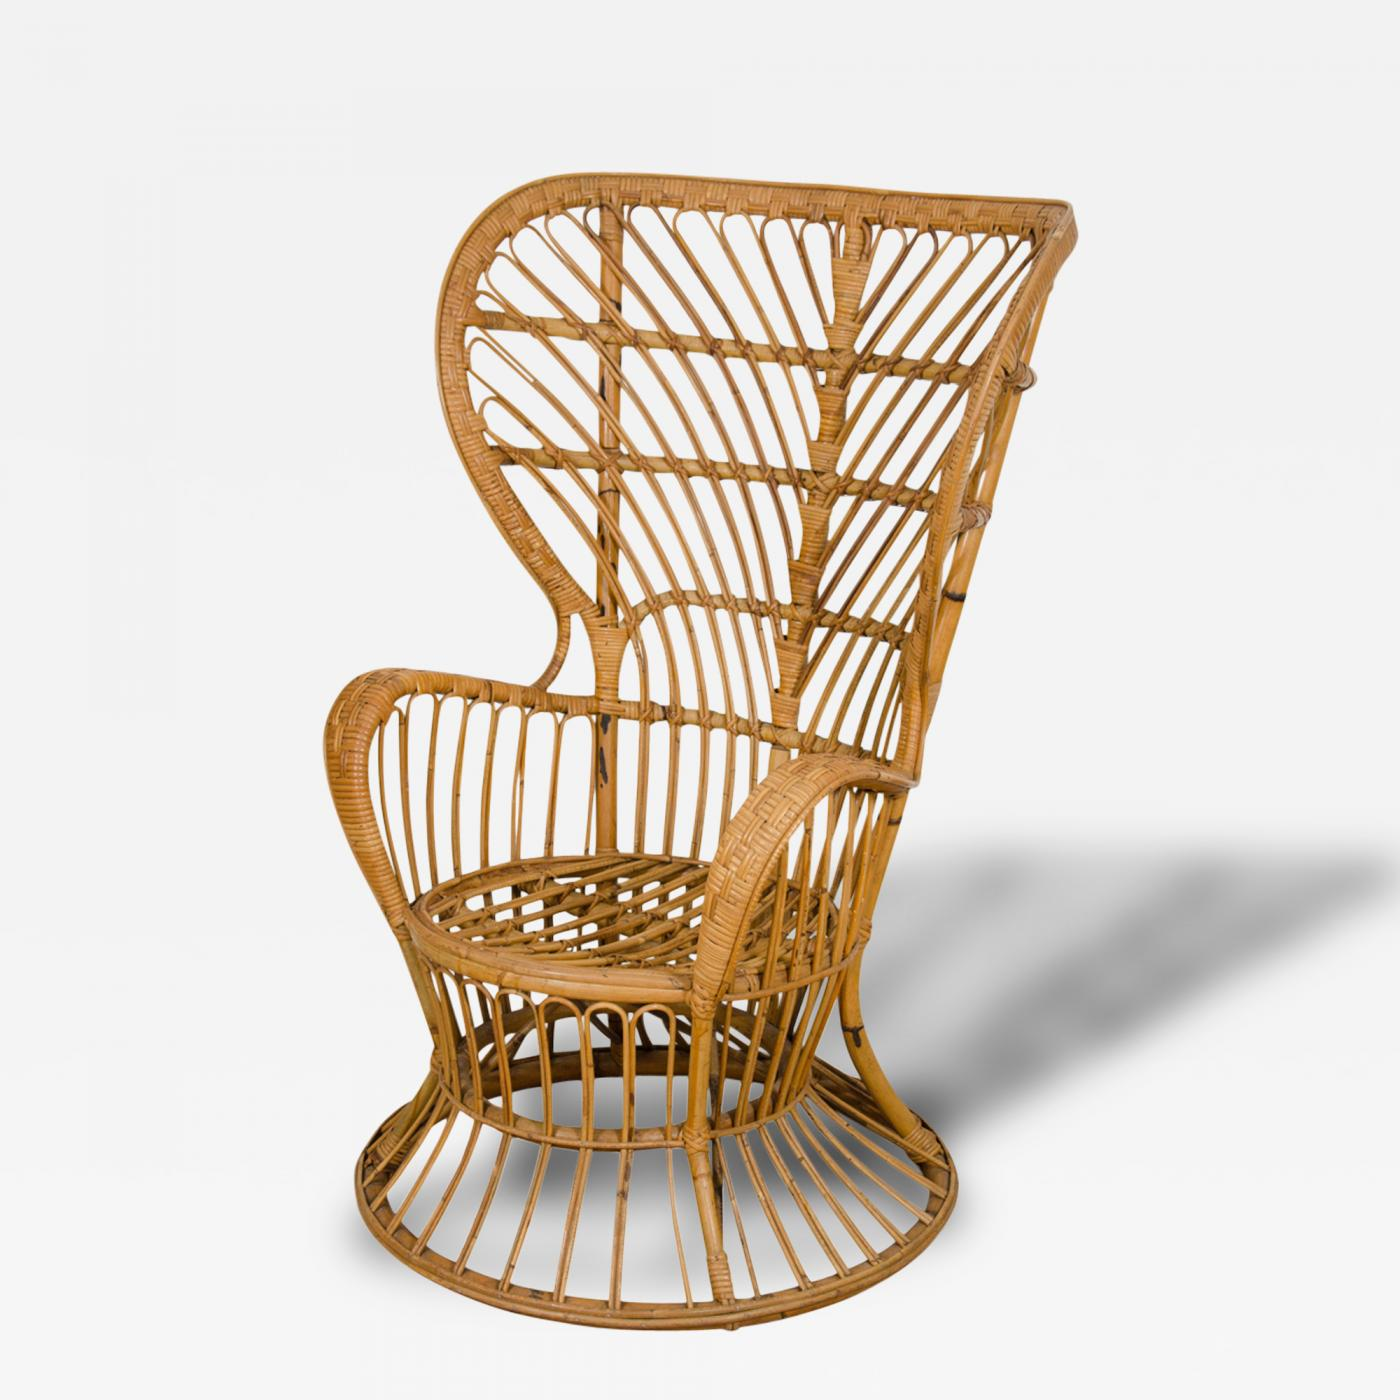 Rattan Chairs Lio Carminati Pair Of Fan Back Rattan Chairs By Gio Ponti